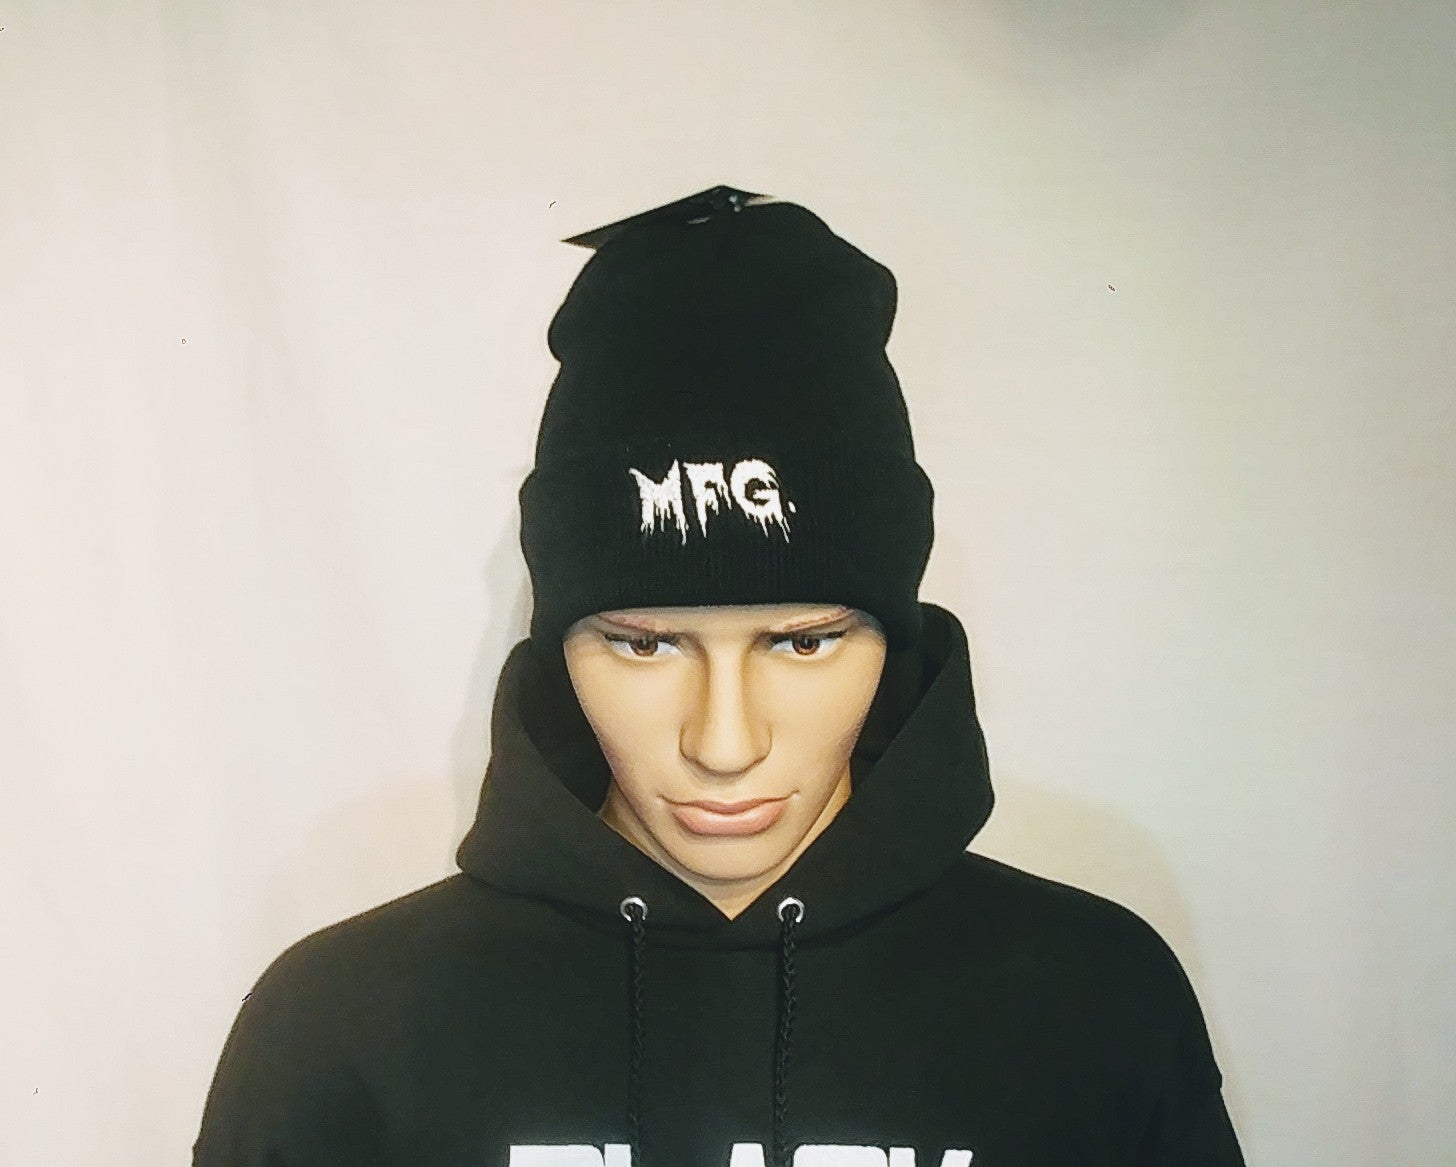 Image of Black Metal Mfg. Logo Beanies